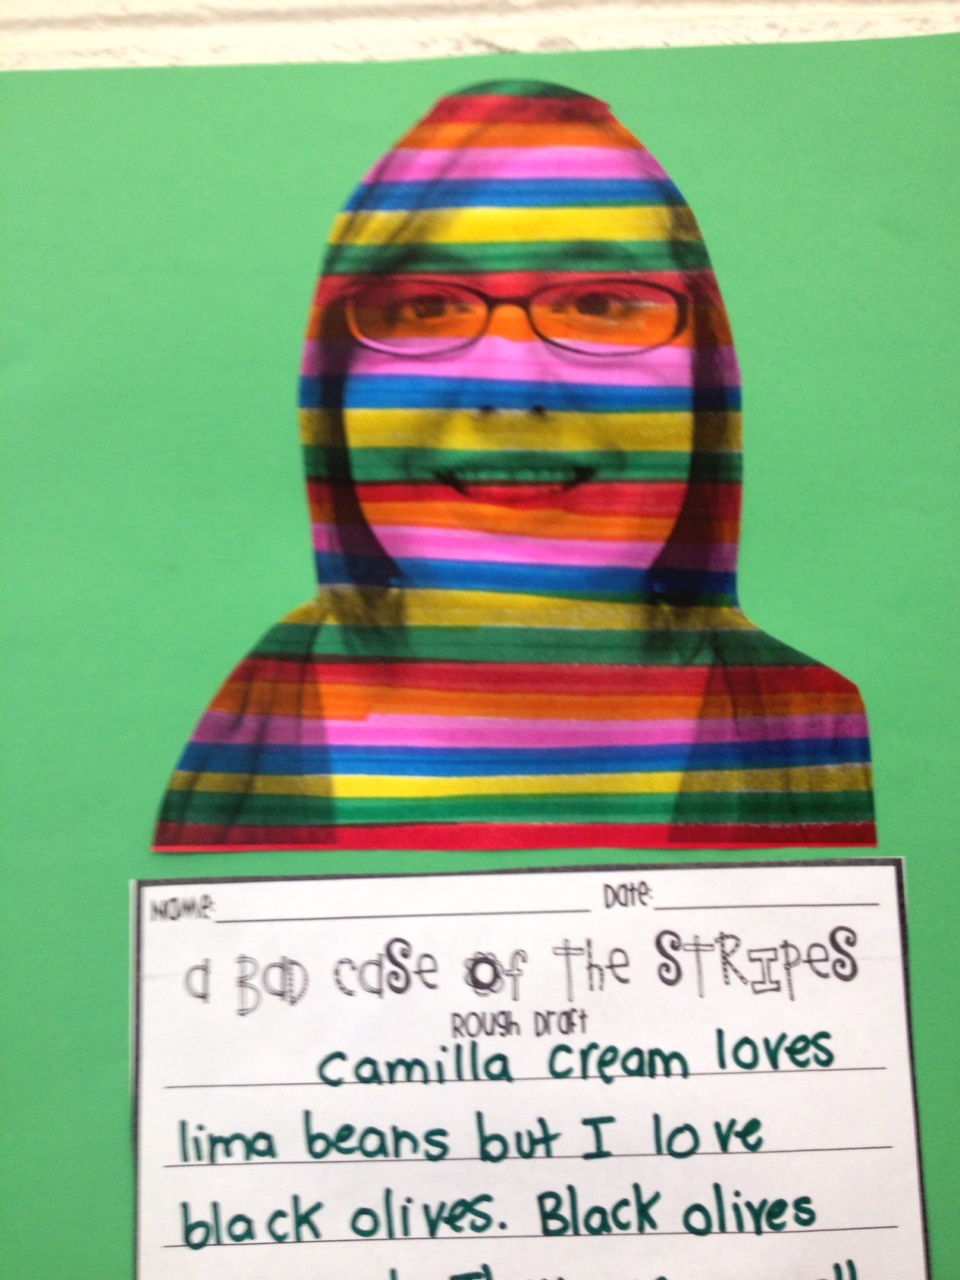 Second grade style five for friday